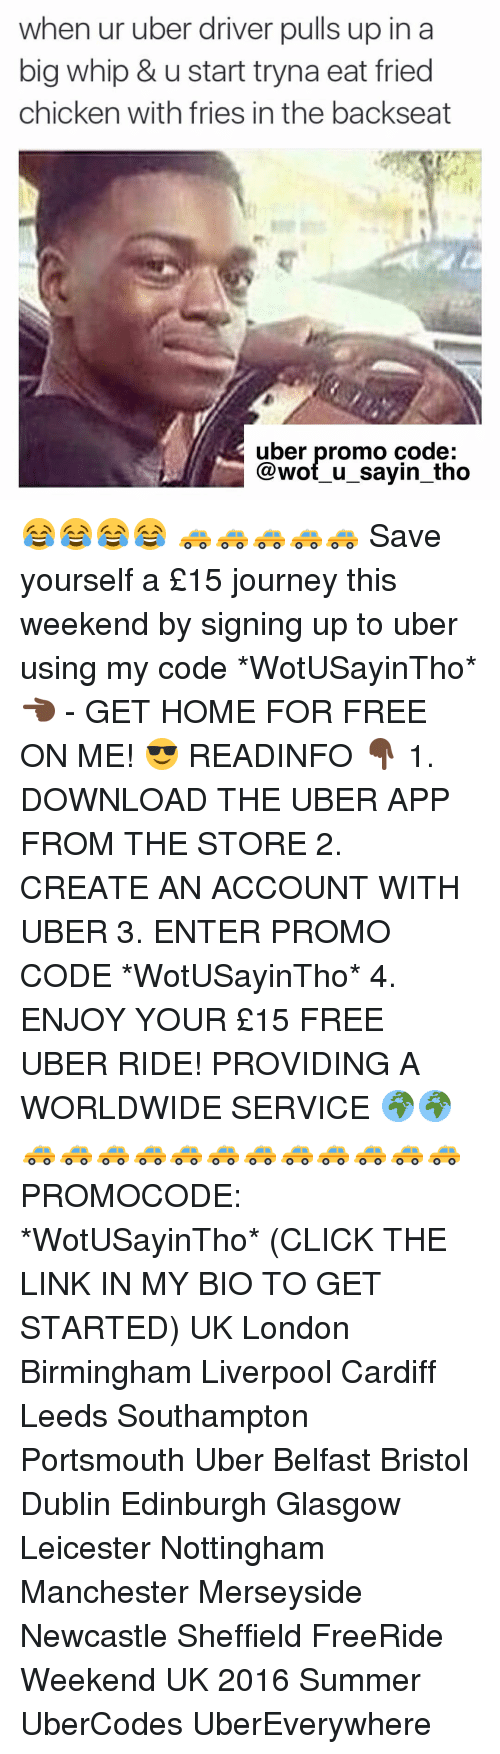 how to find uber eats code on account